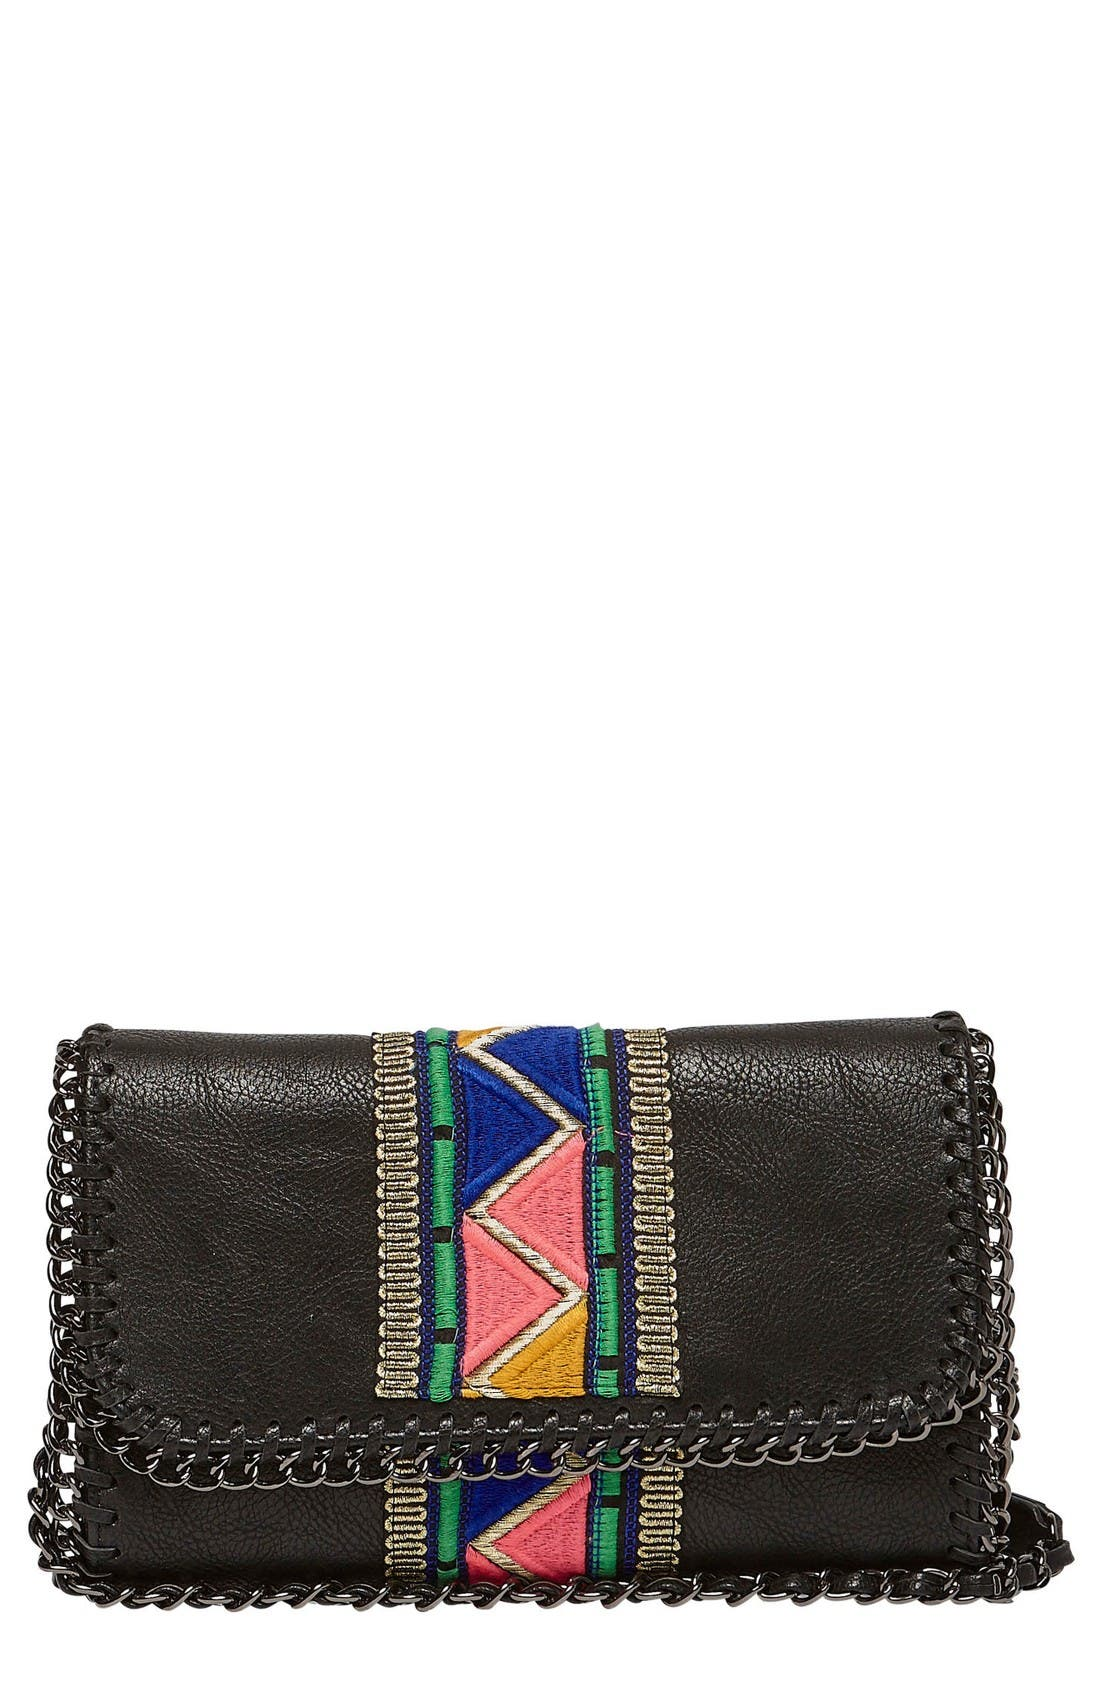 Main Image - Urban Originals Cosmic Love Vegan Leather Clutch